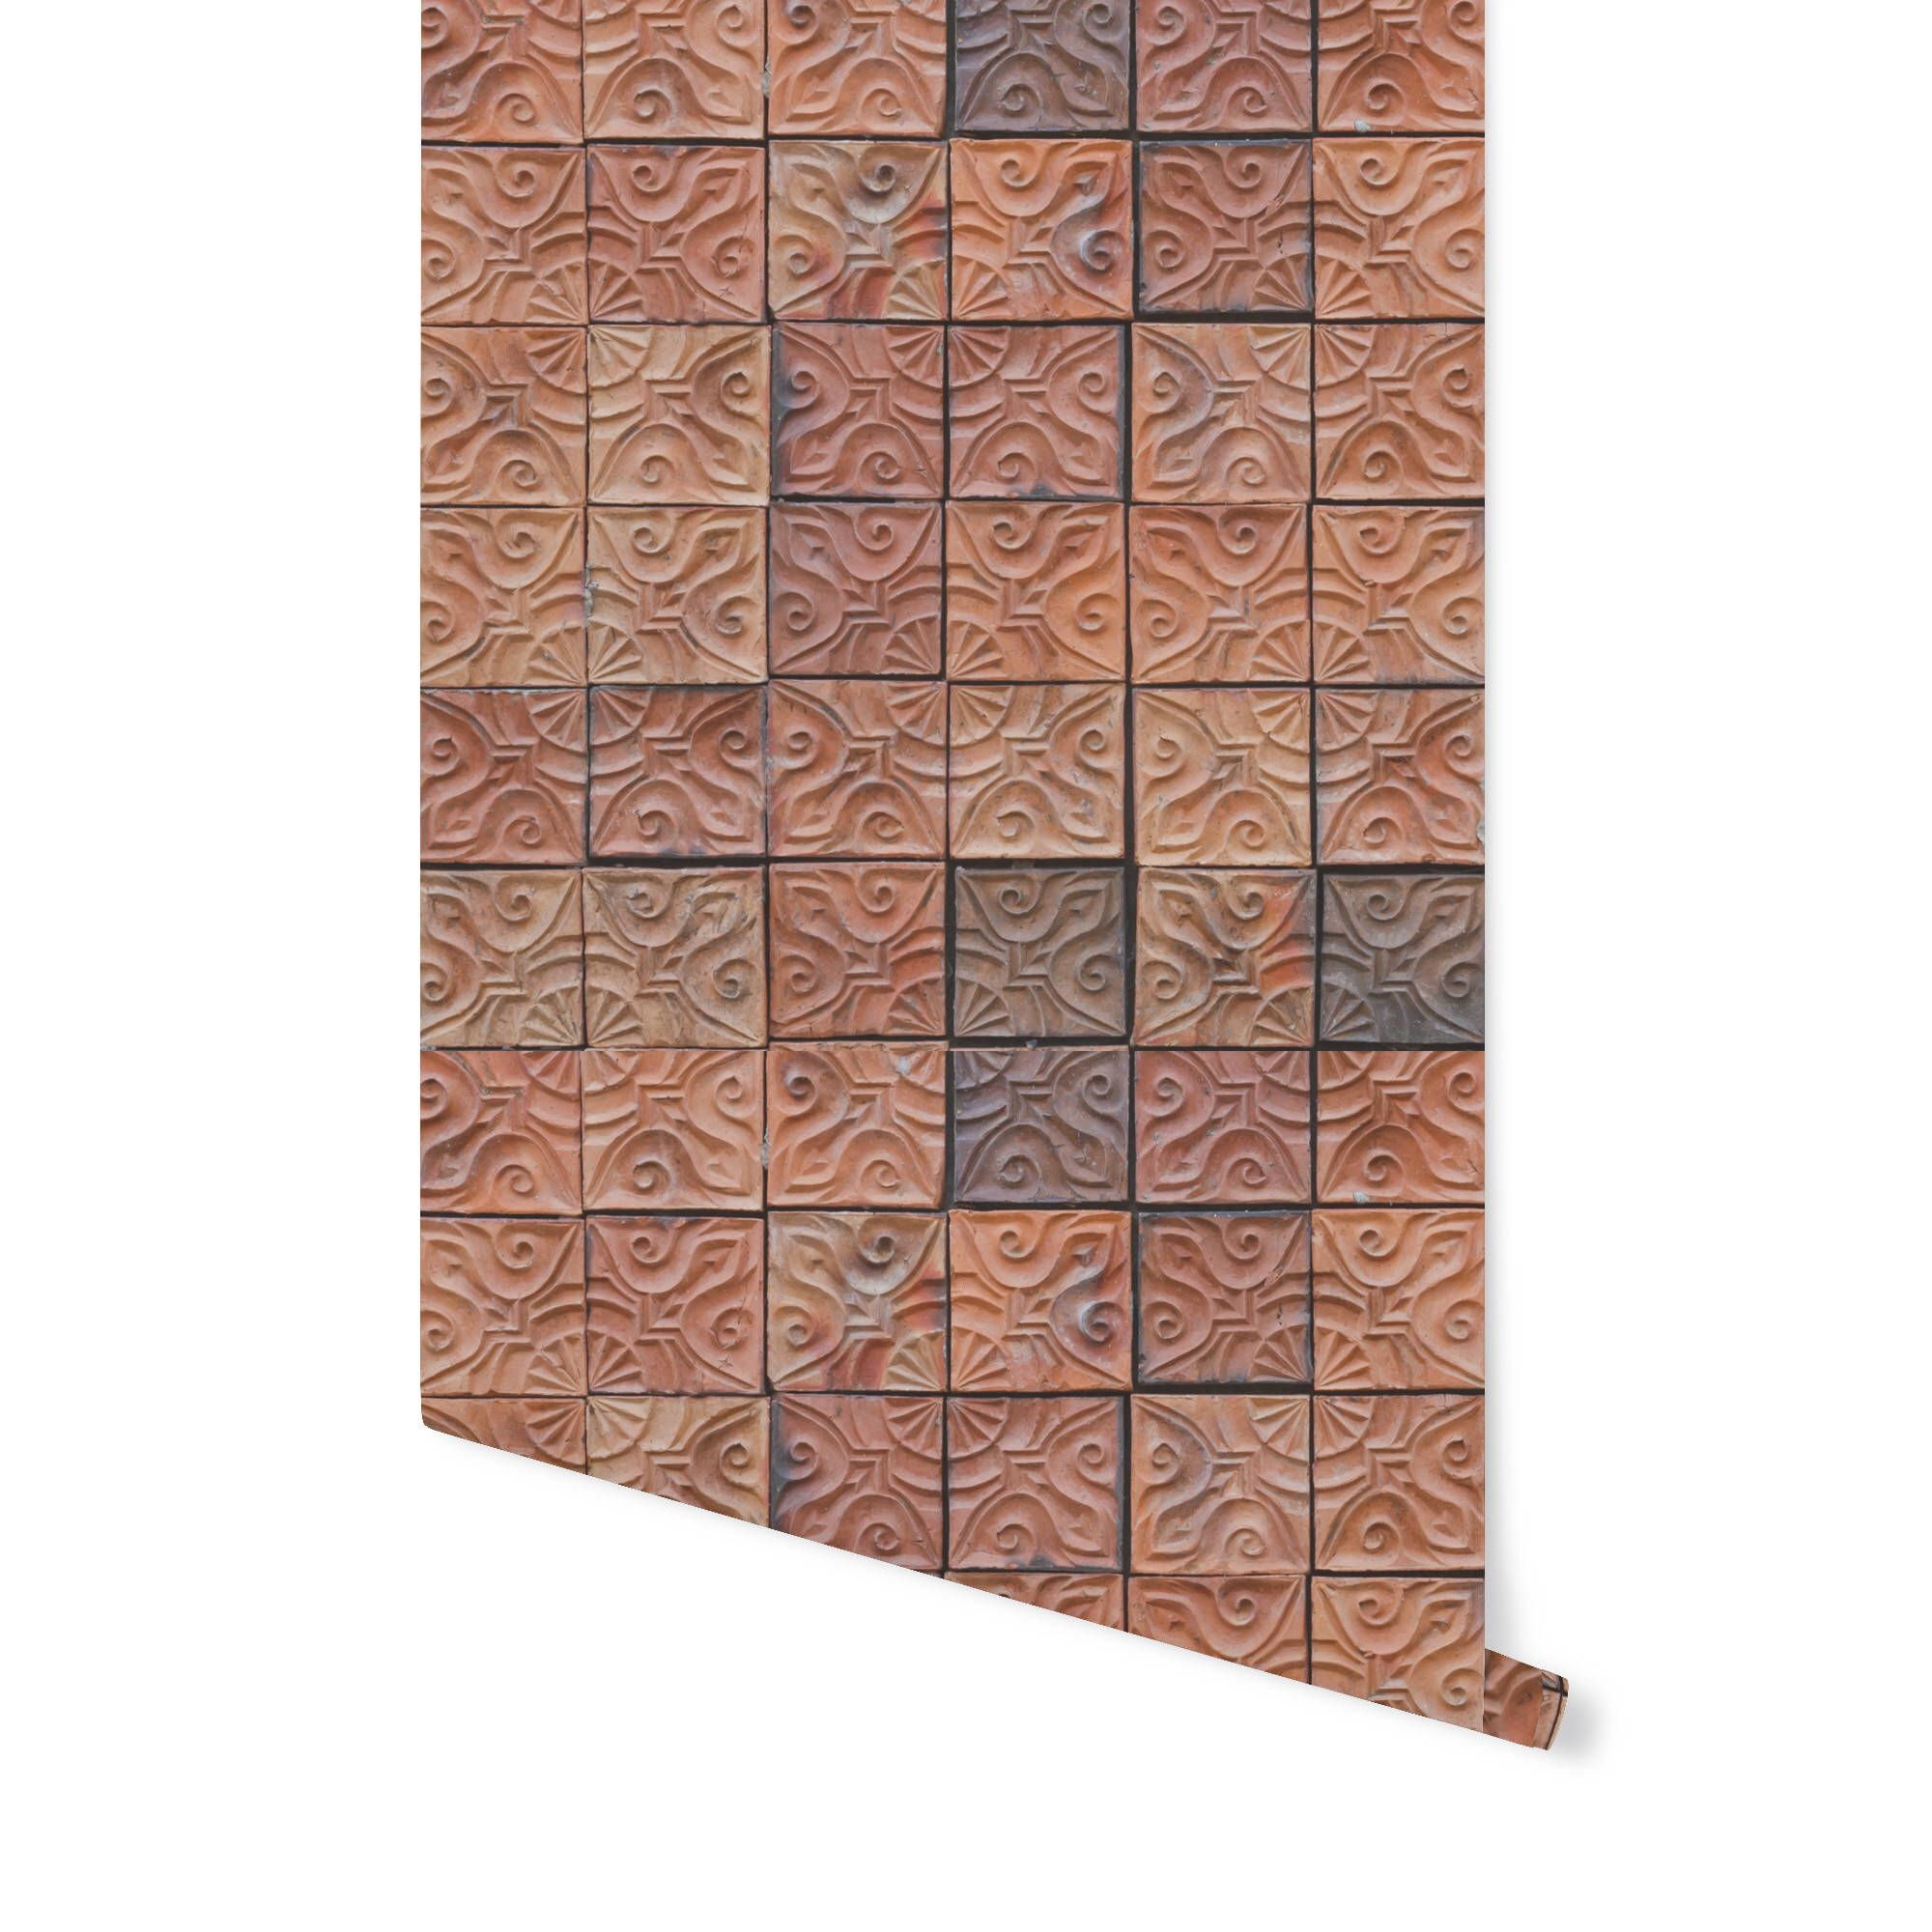 Removable Wallpaper CLAY TILES Simply Peel and Stick